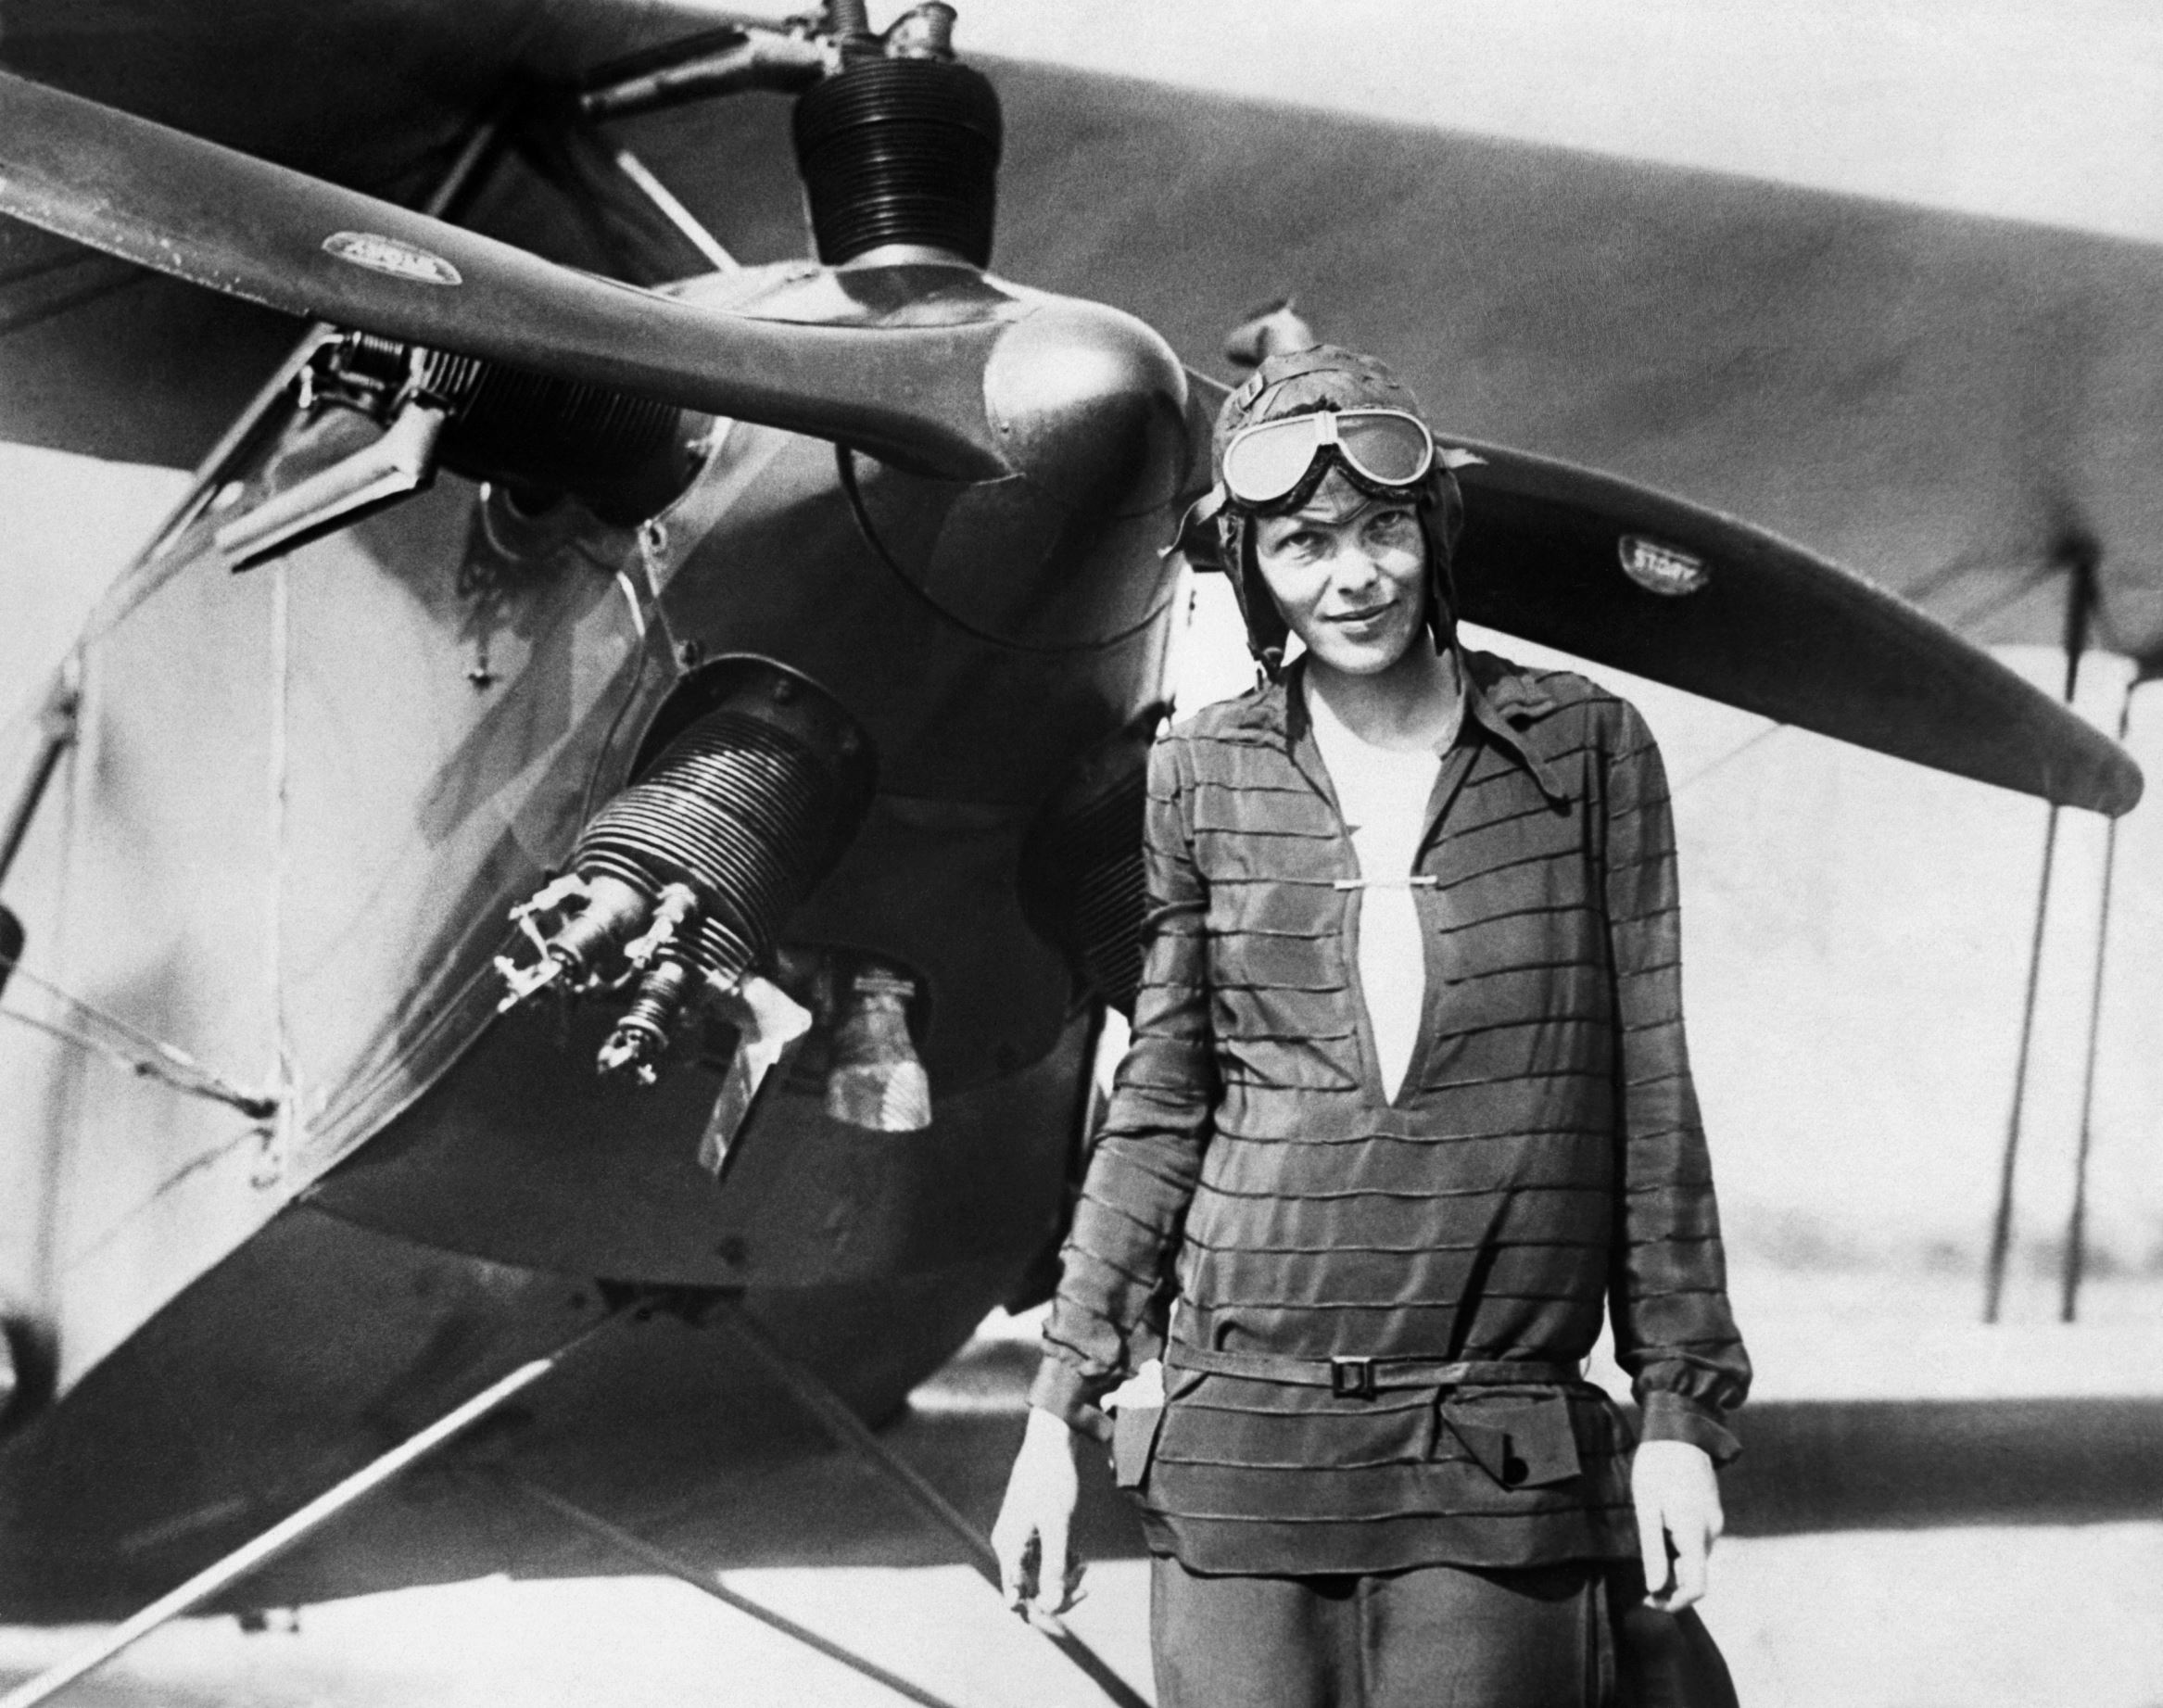 The aviator was the first female pilot to fly across the Atlantic Ocean, mysteriously disappeared while flying over the Pacific Ocean in 1937.